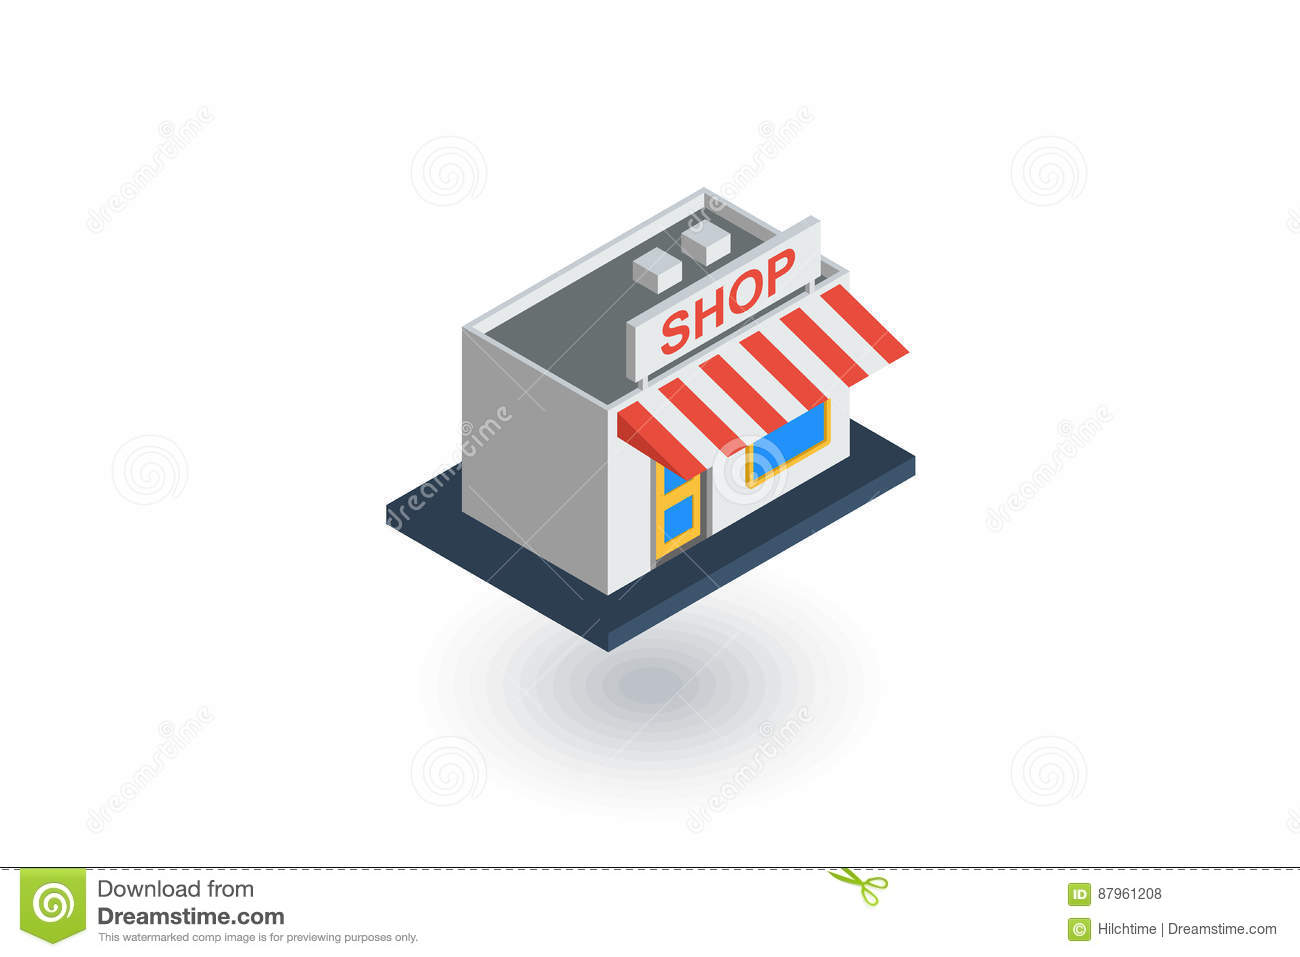 Shop building isometric flat icon. 3d vector